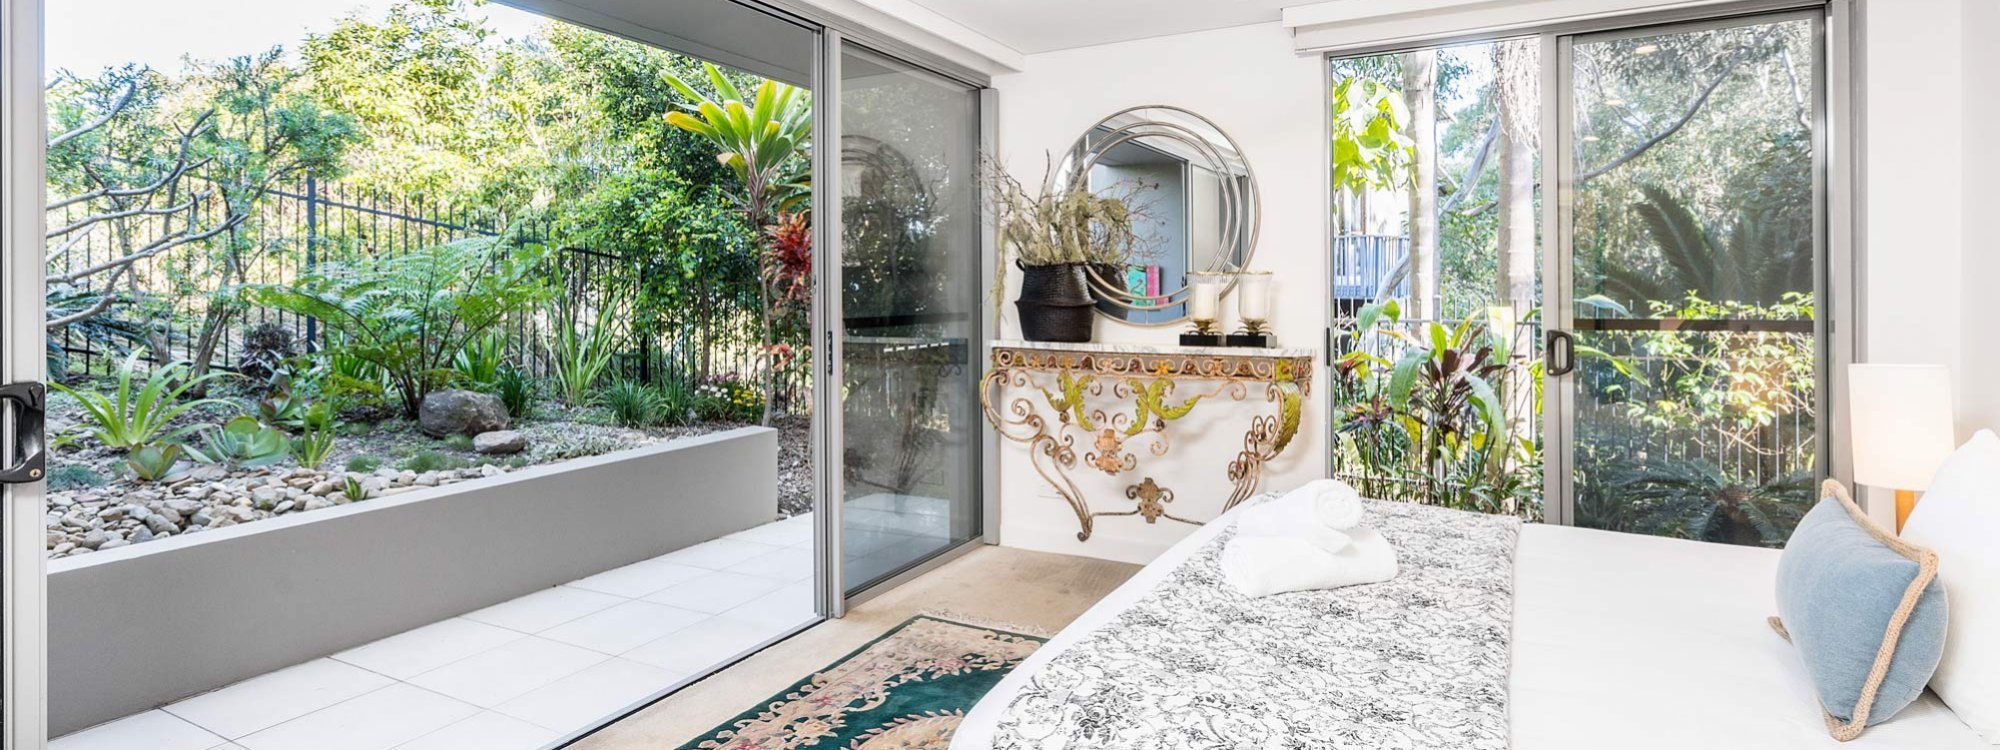 Vue From Here - Byron Bay - Master Bedroom